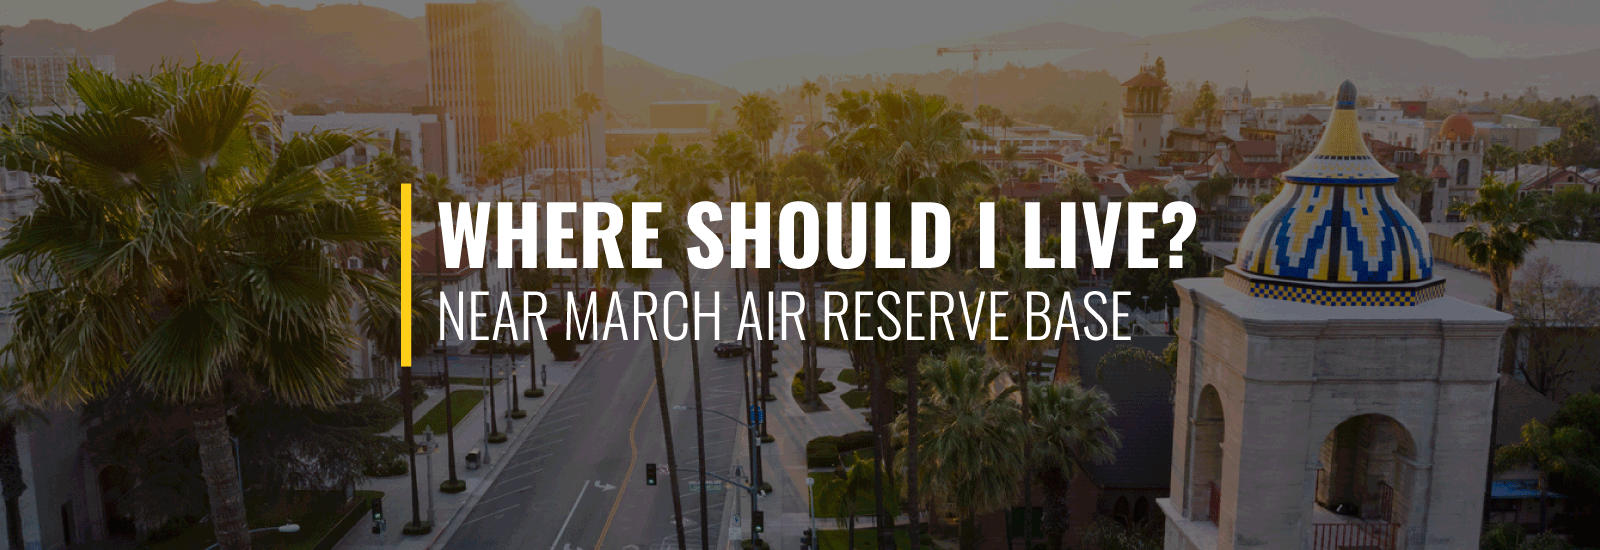 Where Should I Live Near March Air Reserve Base?